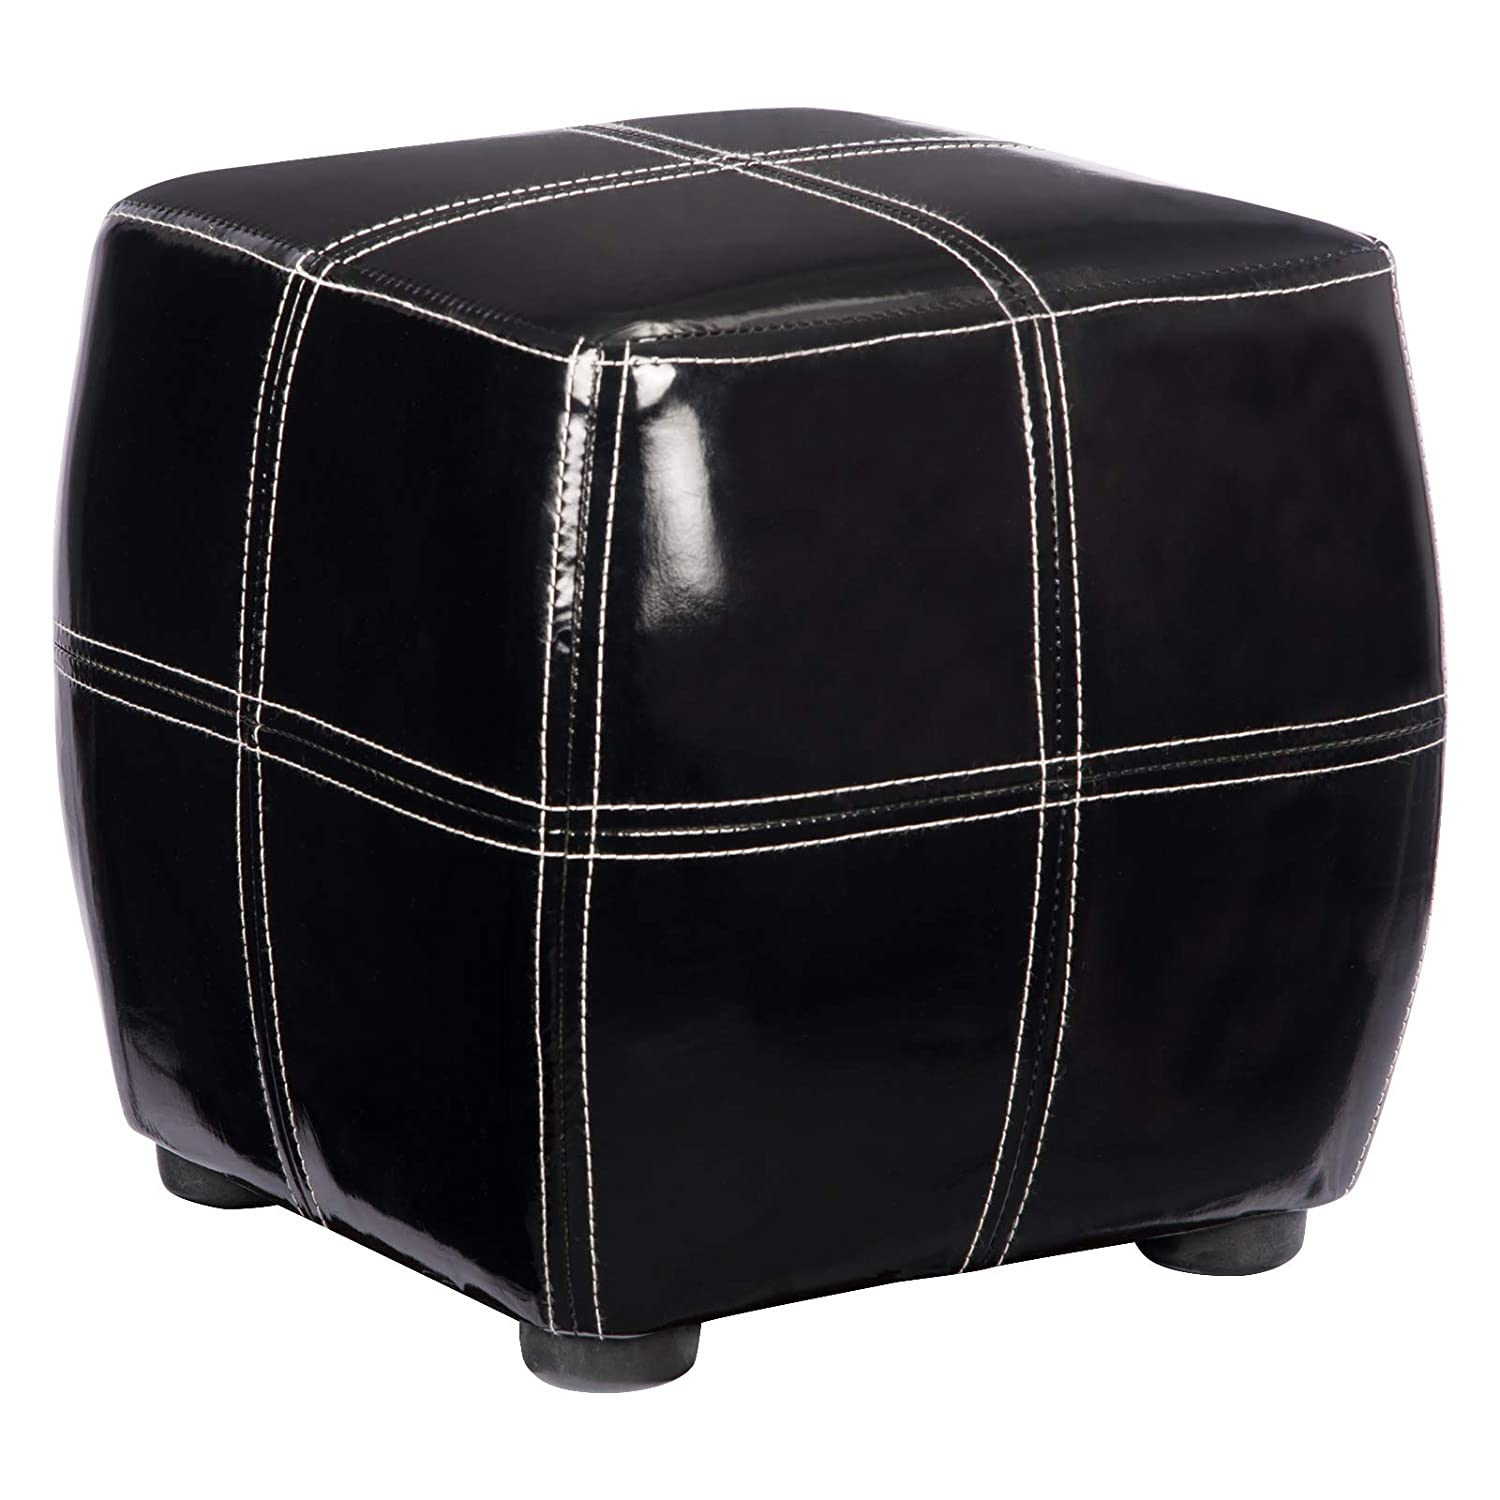 Phenomenal Details About New Black Gloss Faux Patent Leather Upholstered Square Ottoman Pouffe Foot Stool Forskolin Free Trial Chair Design Images Forskolin Free Trialorg